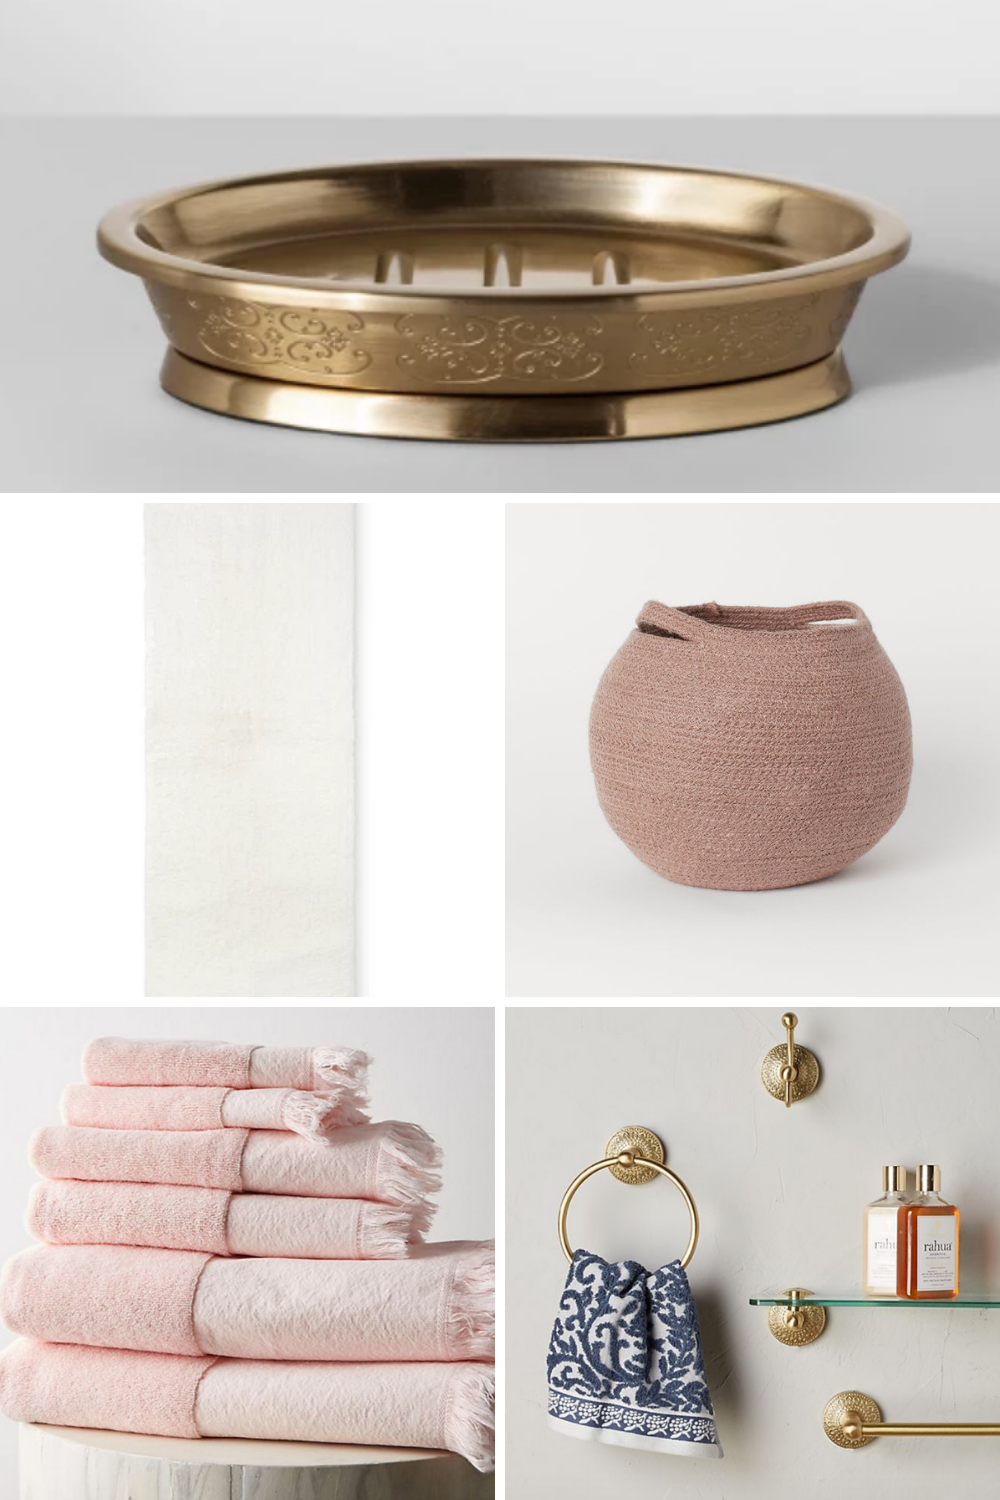 Bathroom Accessories - the bee life (3)